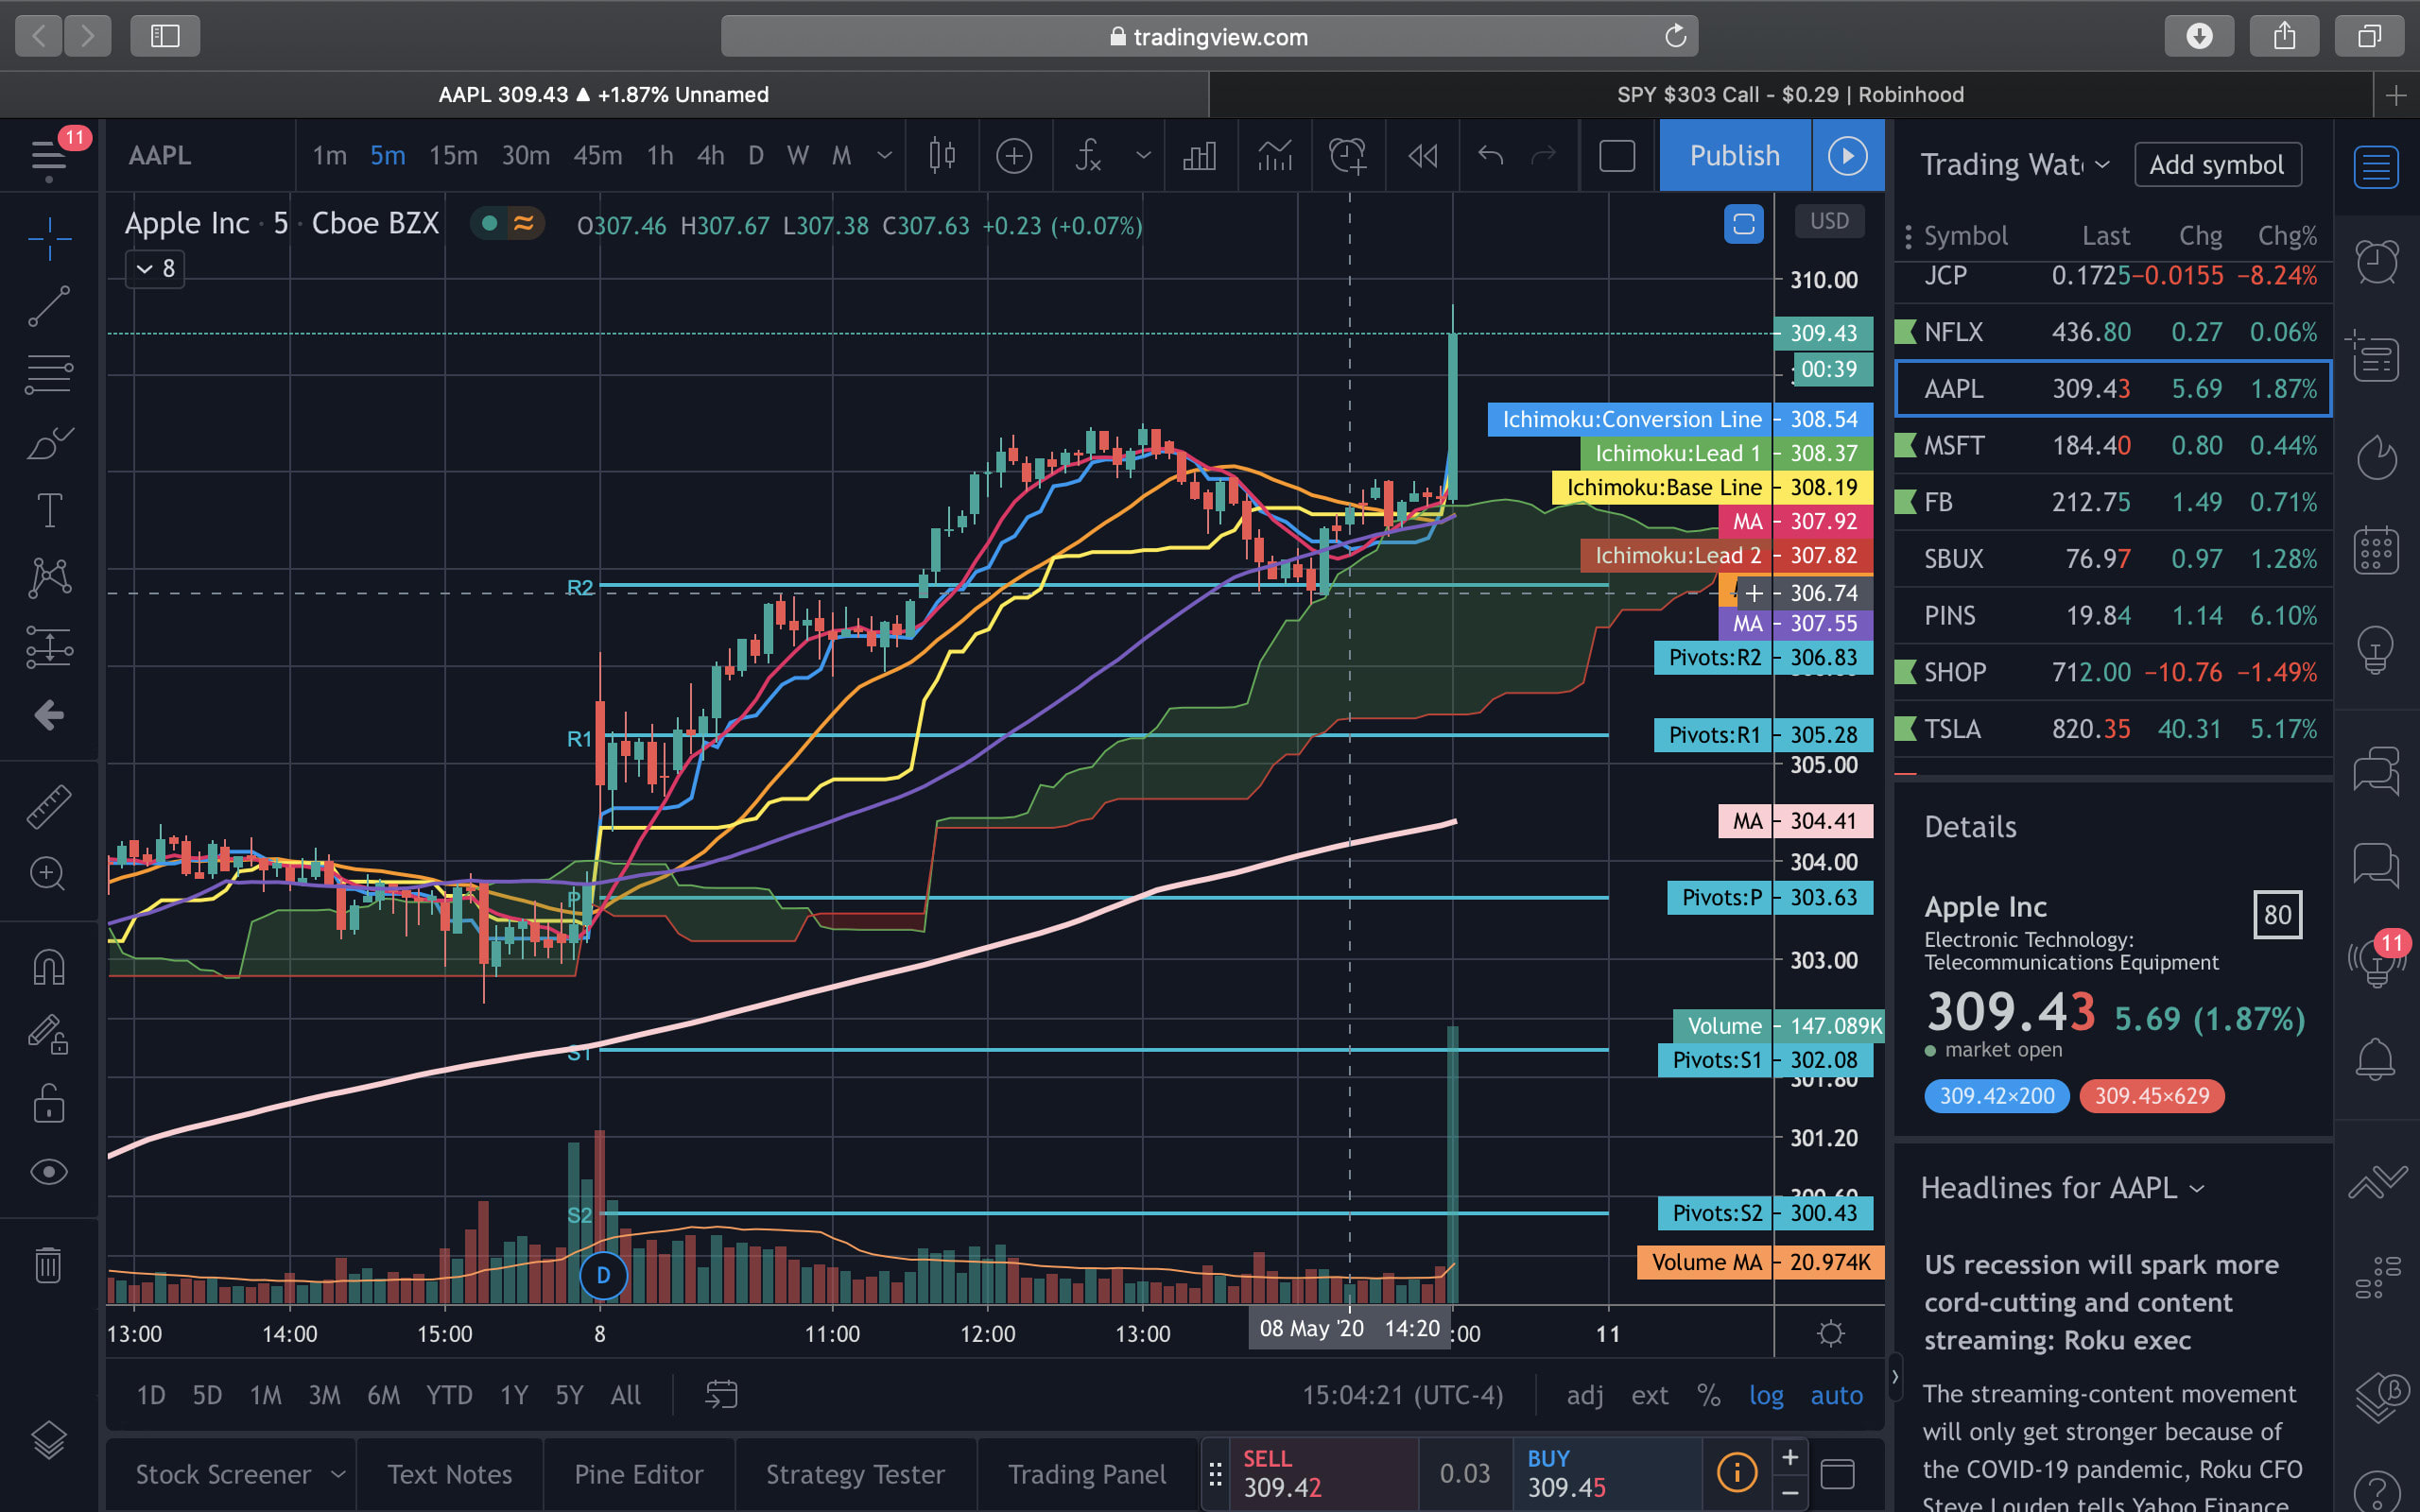 Teach you stock trading, options, chart analysis by Bilalahmed425